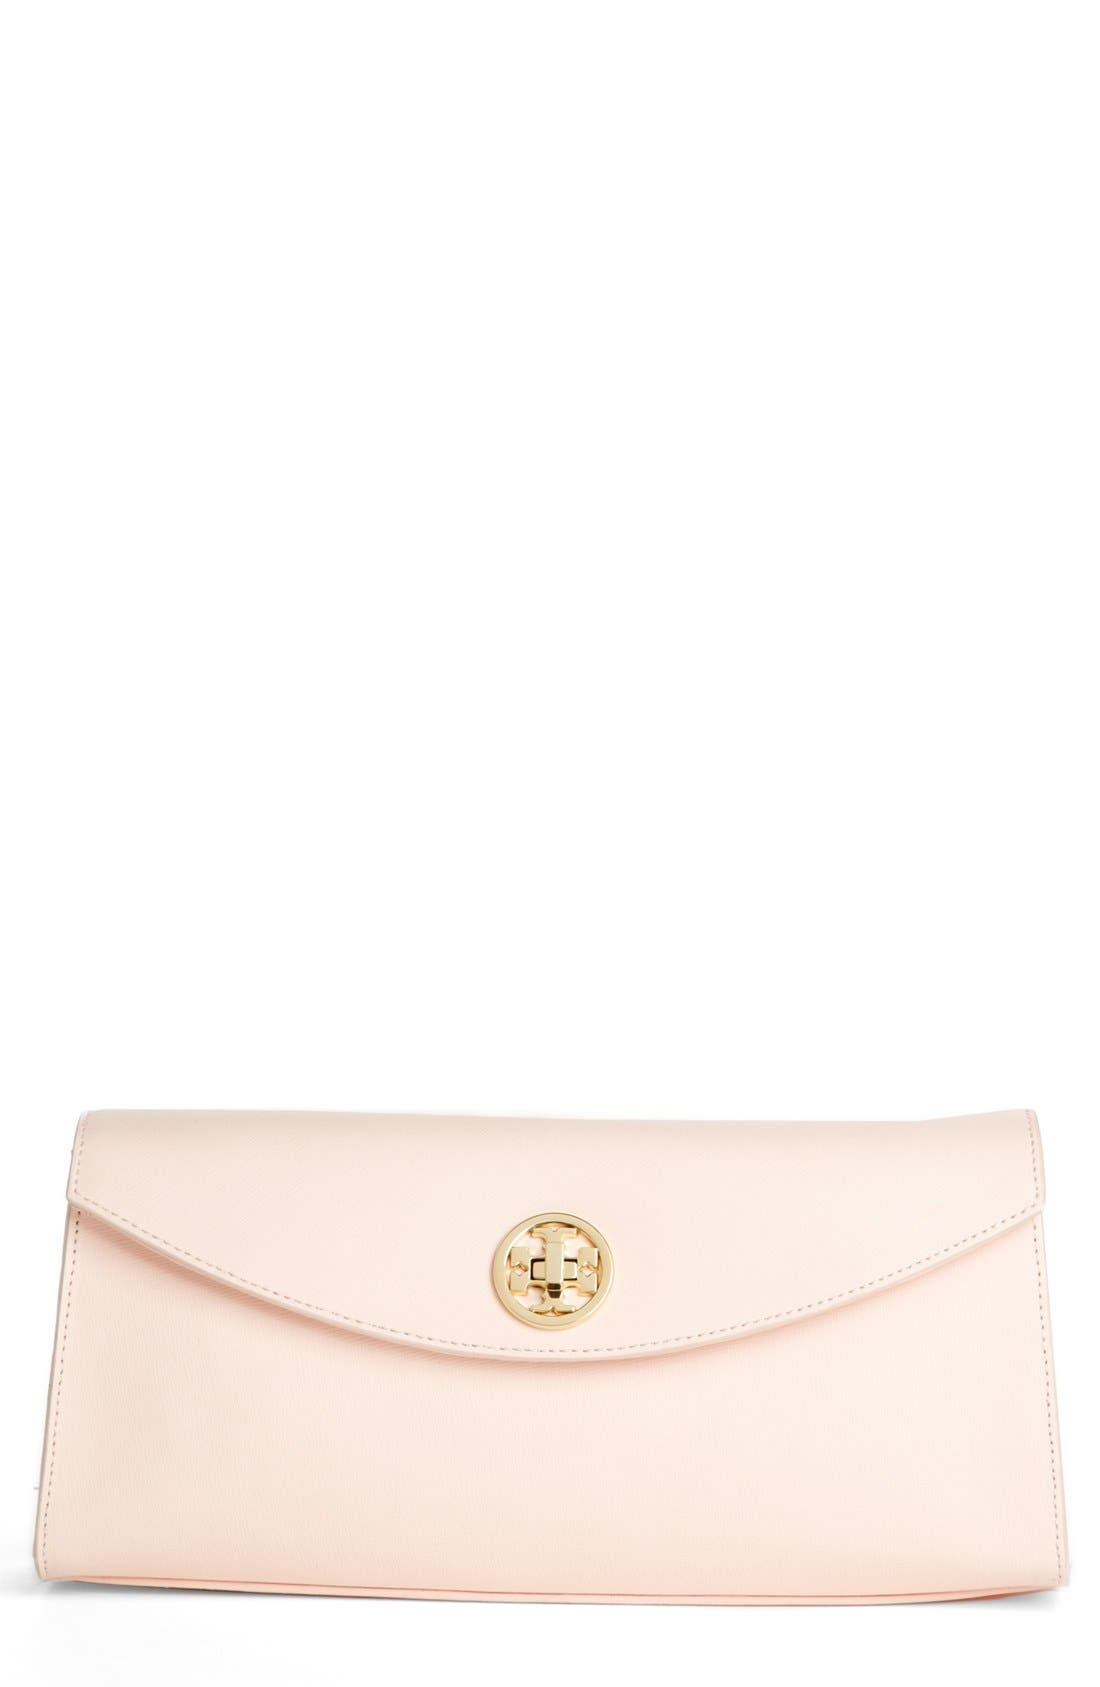 Alternate Image 1 Selected - Tory Burch 'Austin' Saffiano Leather Flap Clutch